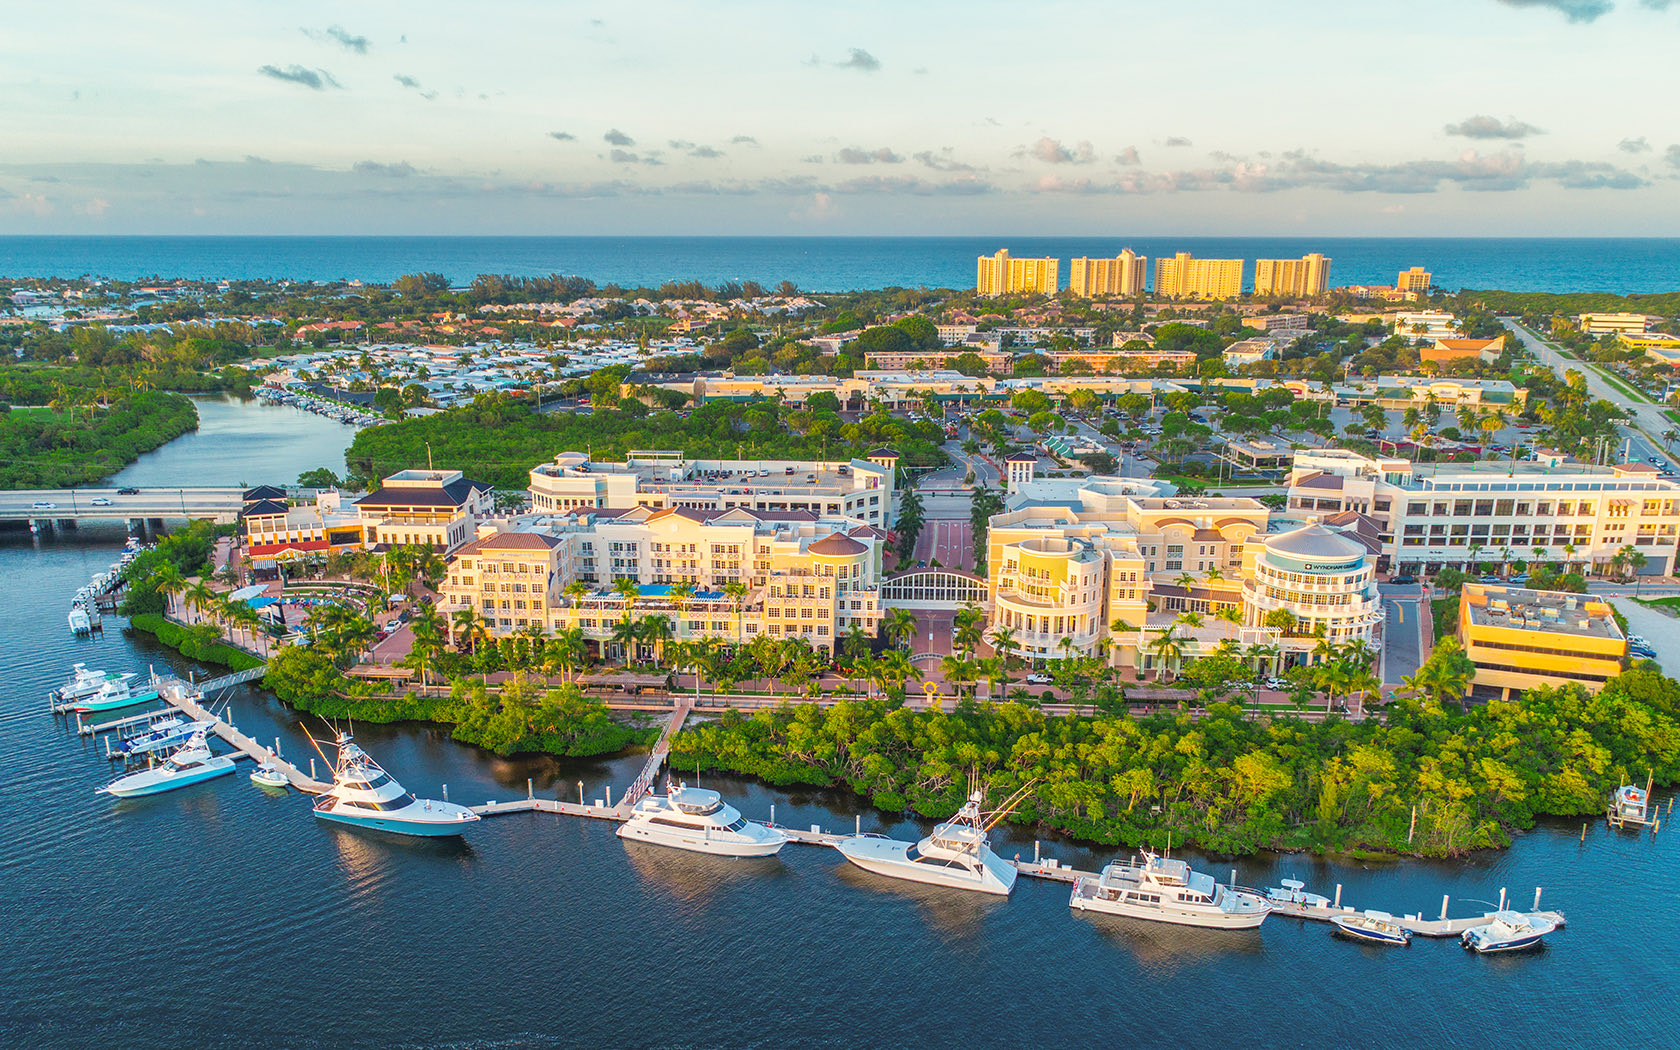 Therma° helped Wyndham Grand Jupiter protect their inventory